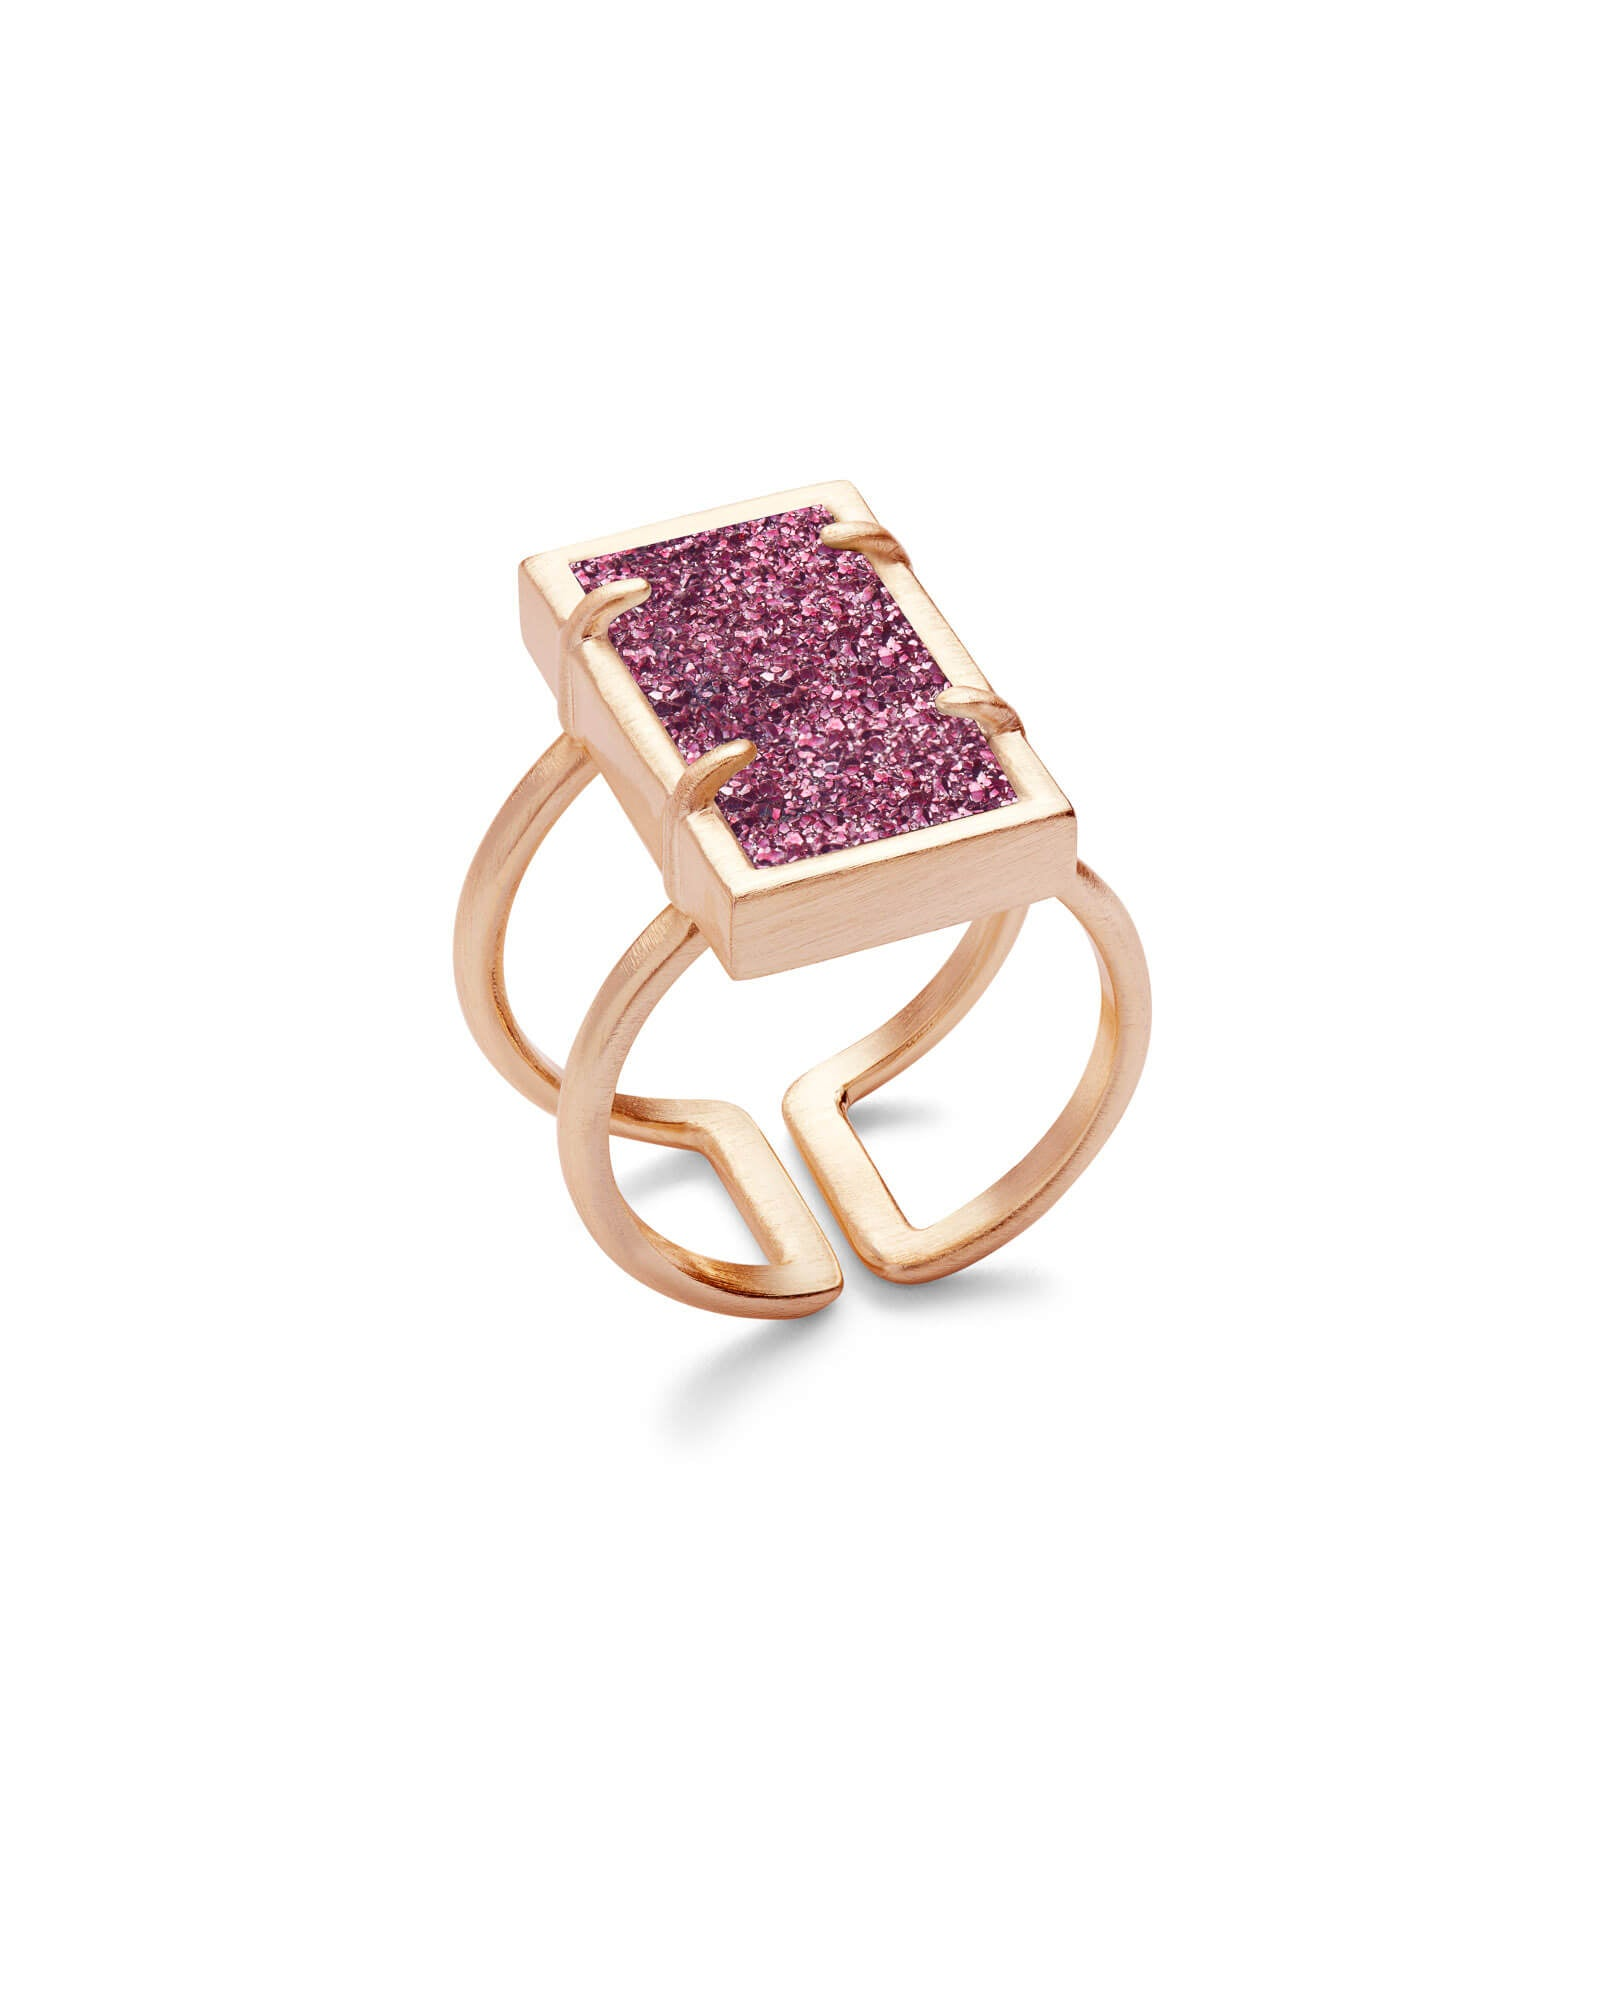 Kendra Scott Lennox Ring In Rose Gold